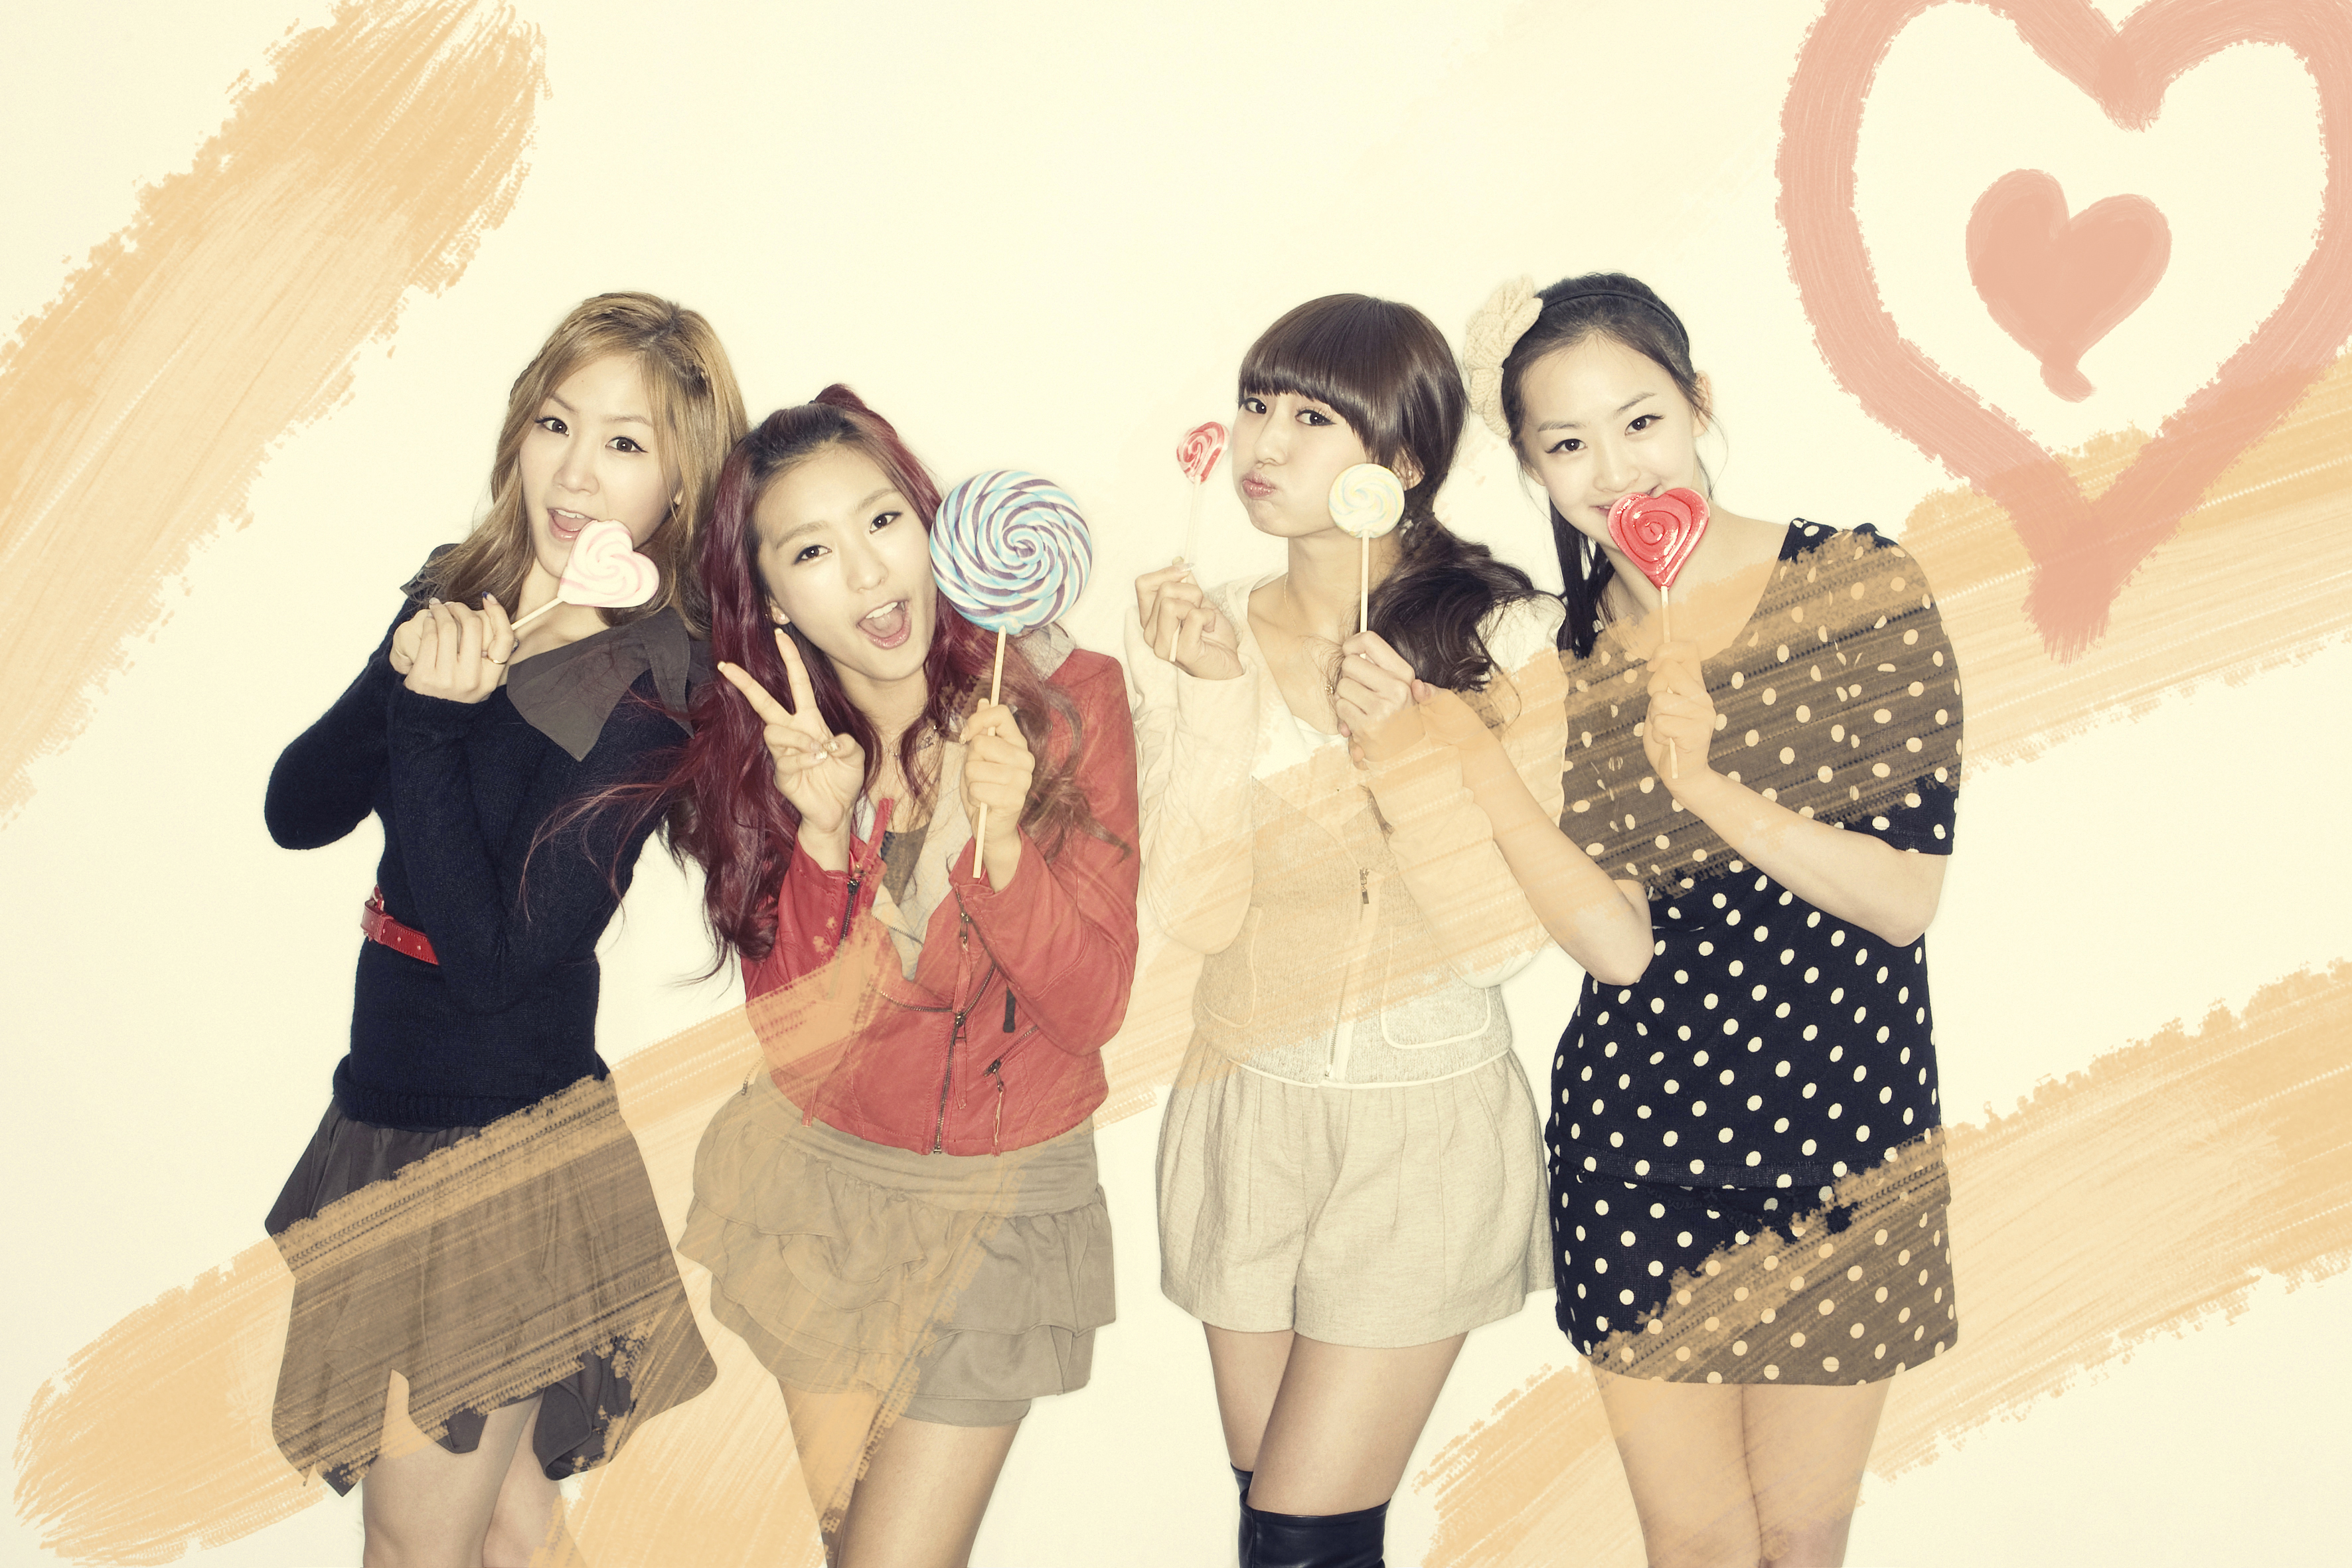 Sistar Lolipop Wallpaper - Sistar Lolipop Wallpaper